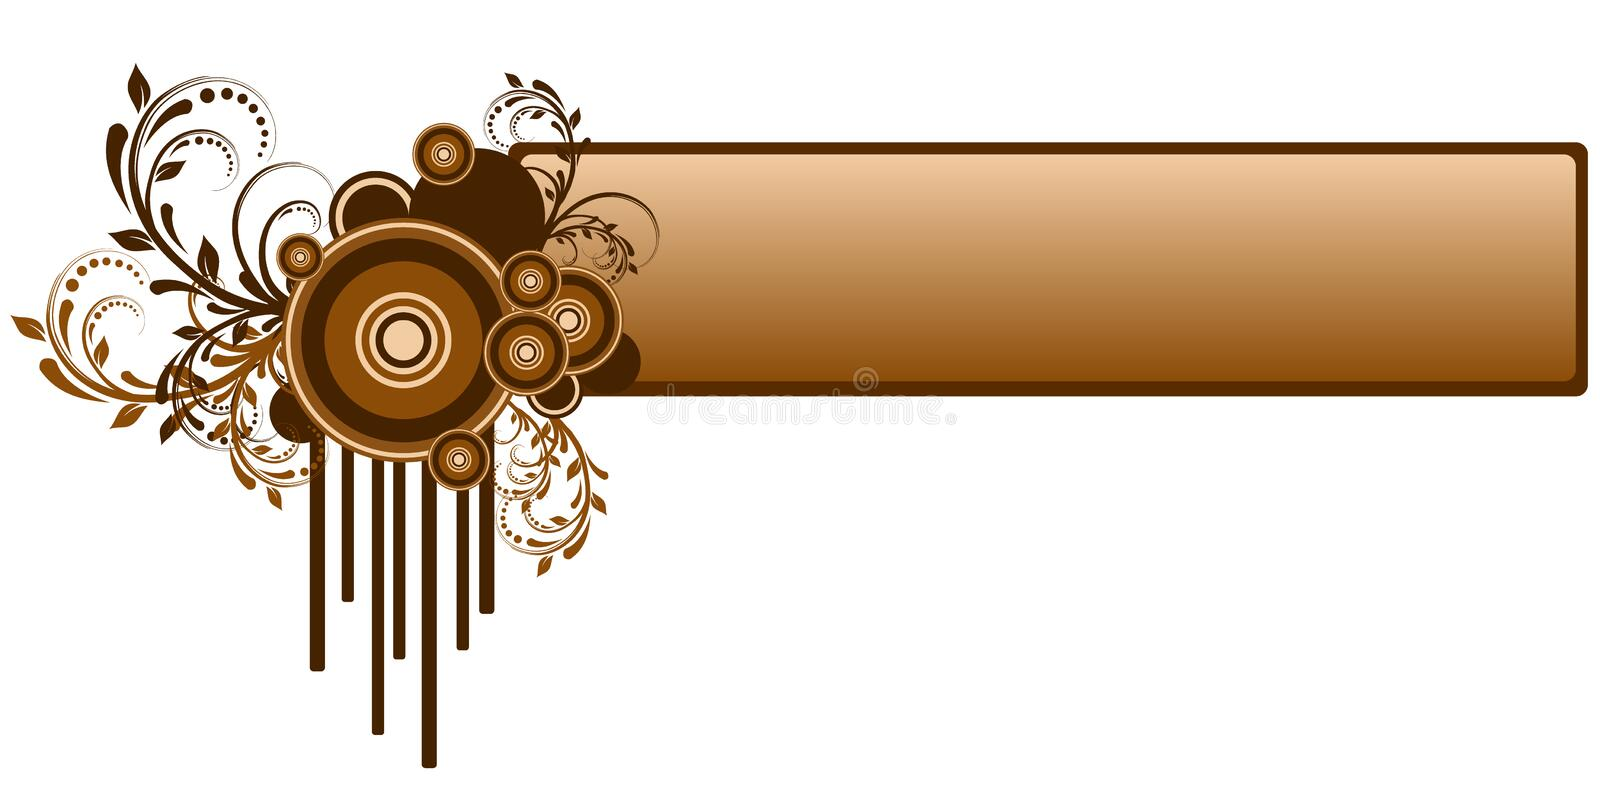 Abstract banner stock illustration